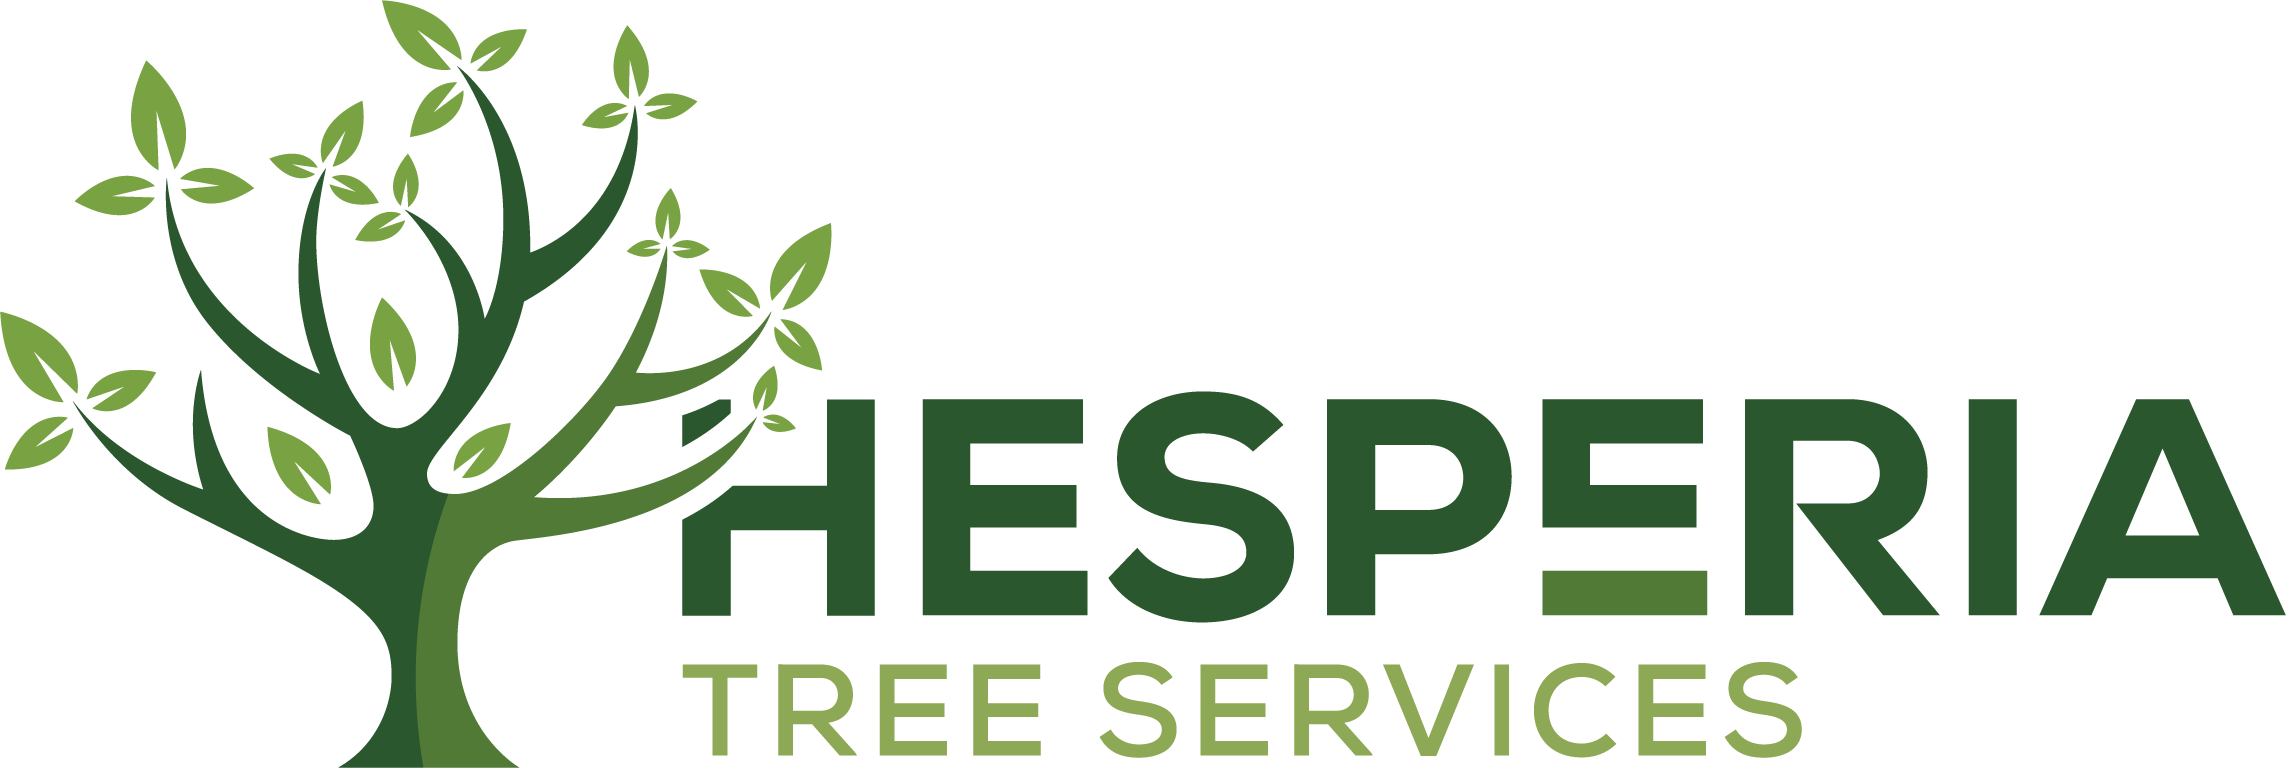 Hesperia Tree Services